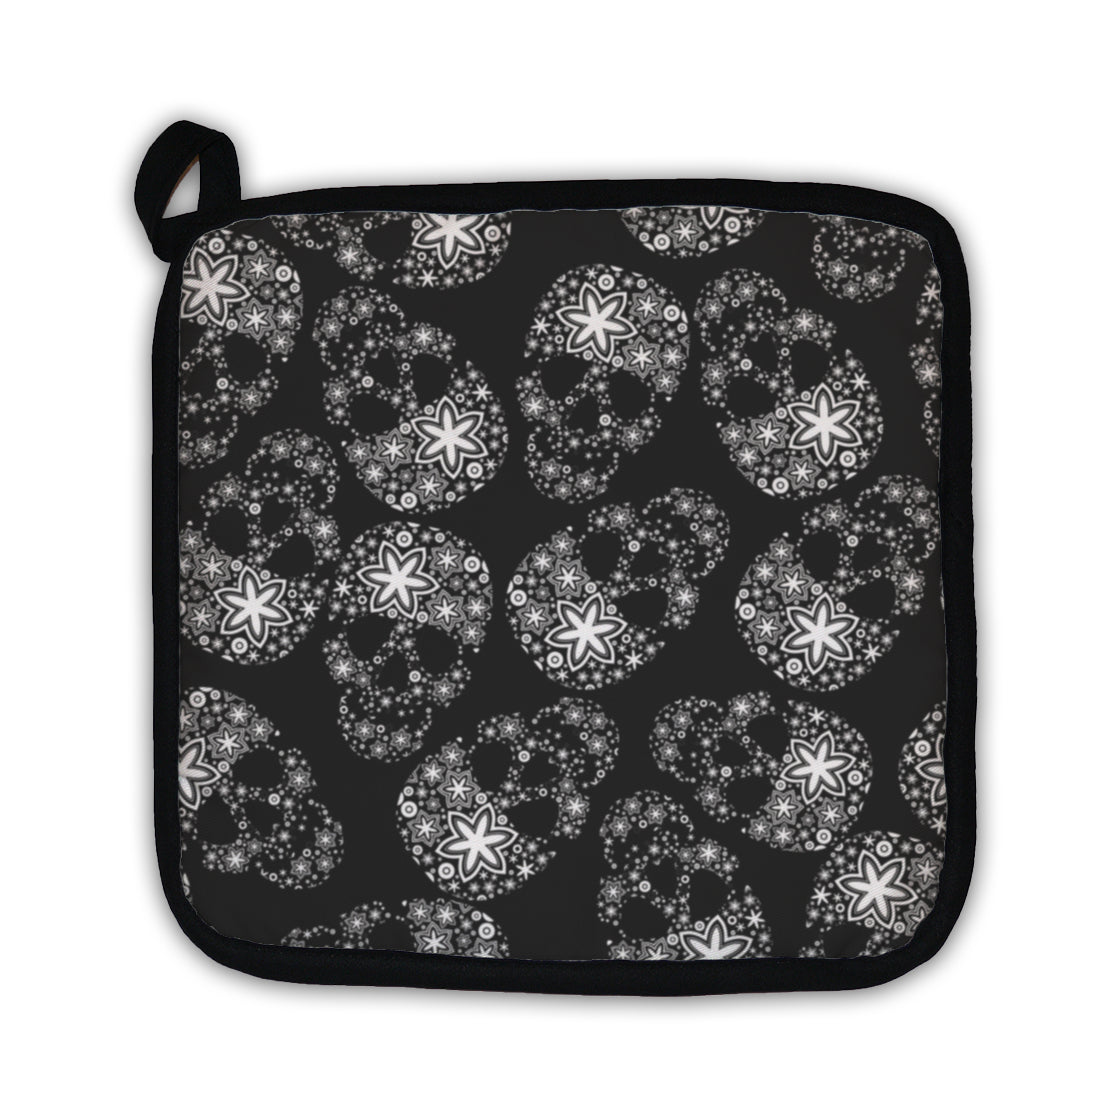 Potholder, White Skulls In Flowers On Black - skulldaze